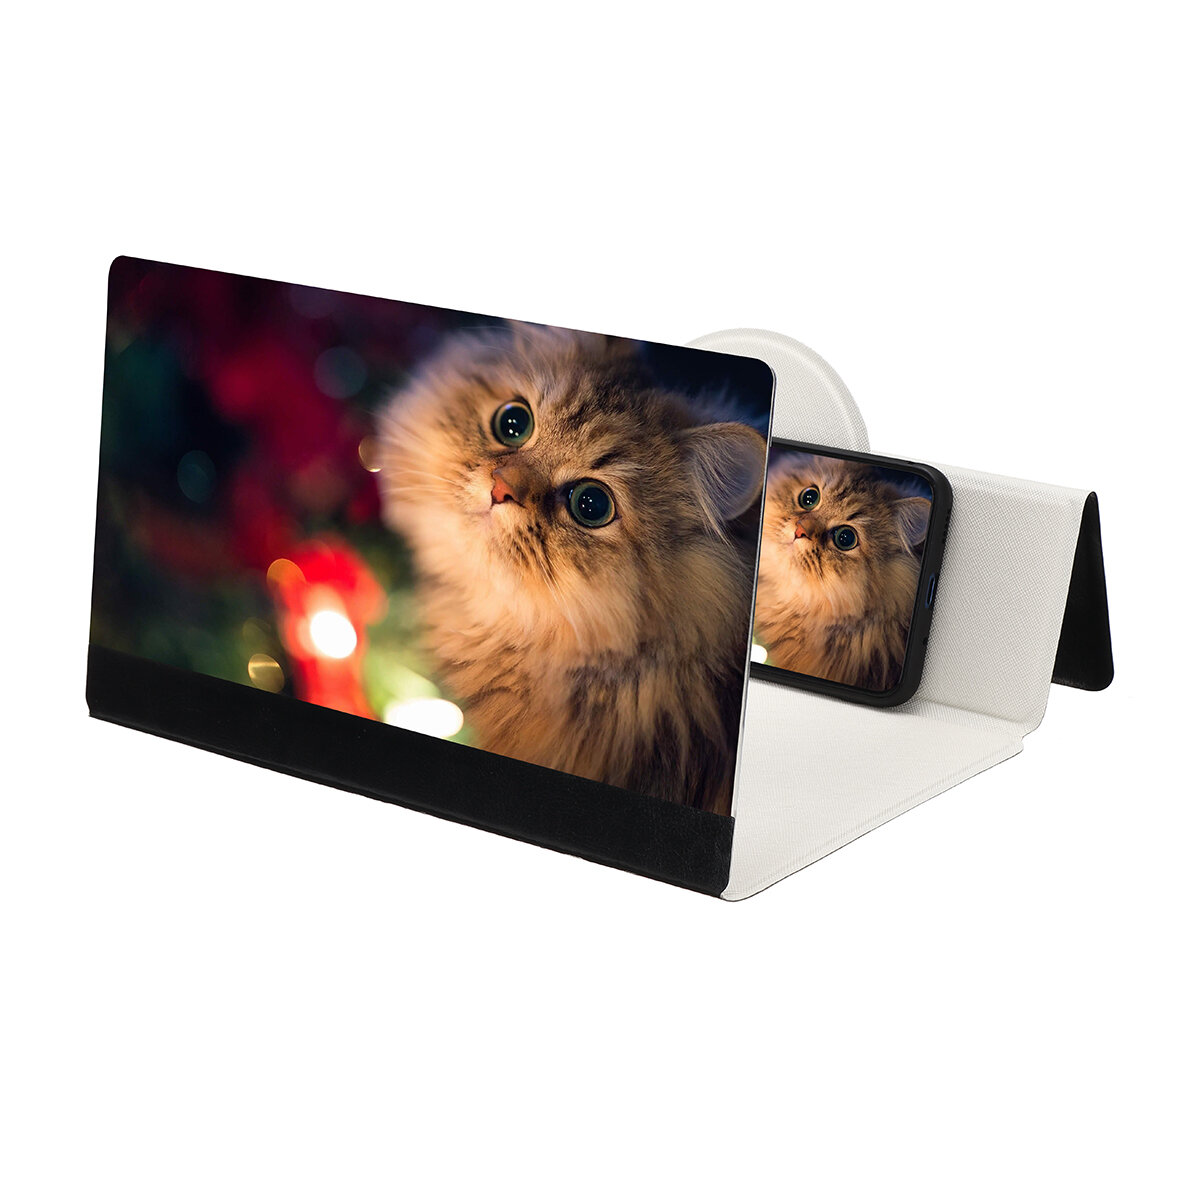 12 Inches Foldable 3D HD Phone Screen Magnifier Movie Video Amplifier PU Leather Cover For Smart Phones iPhone Samsung